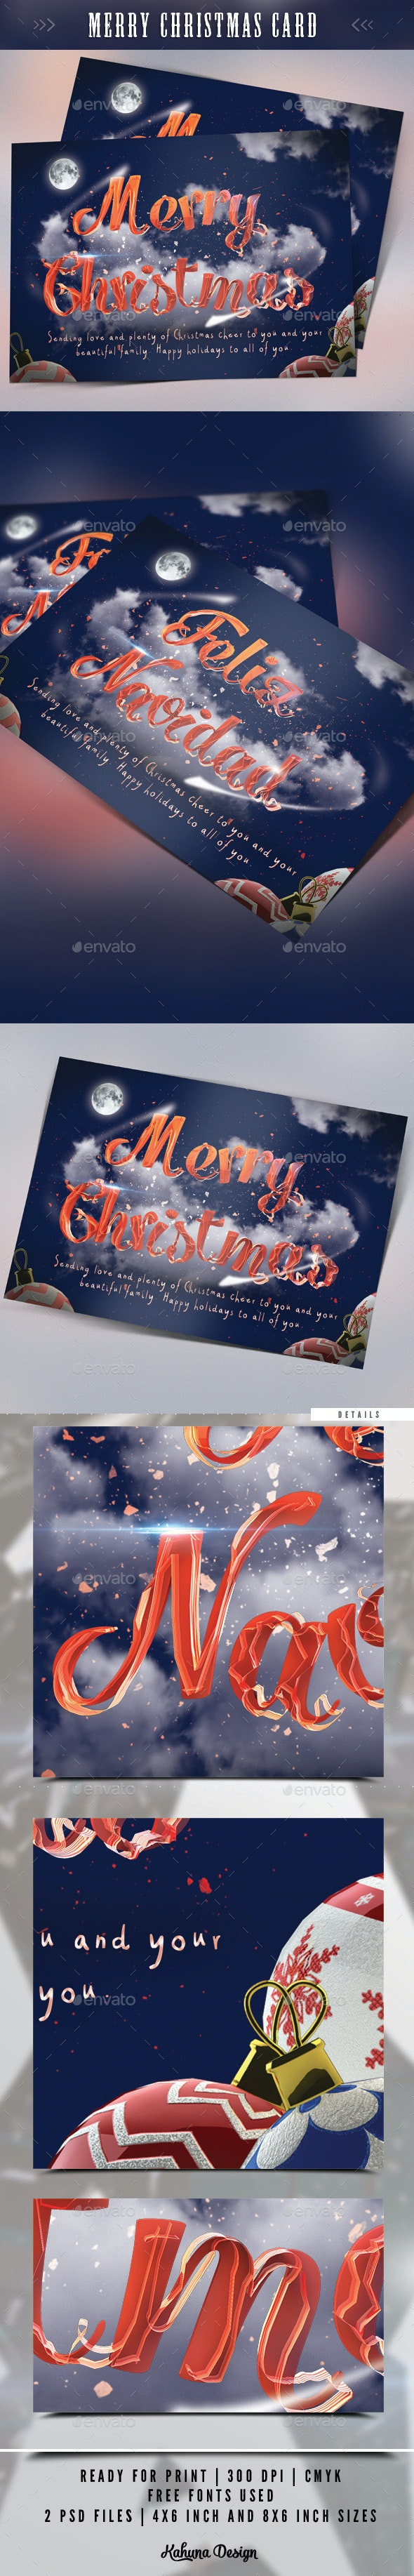 Merry Christmas Card - Holiday Greeting Cards